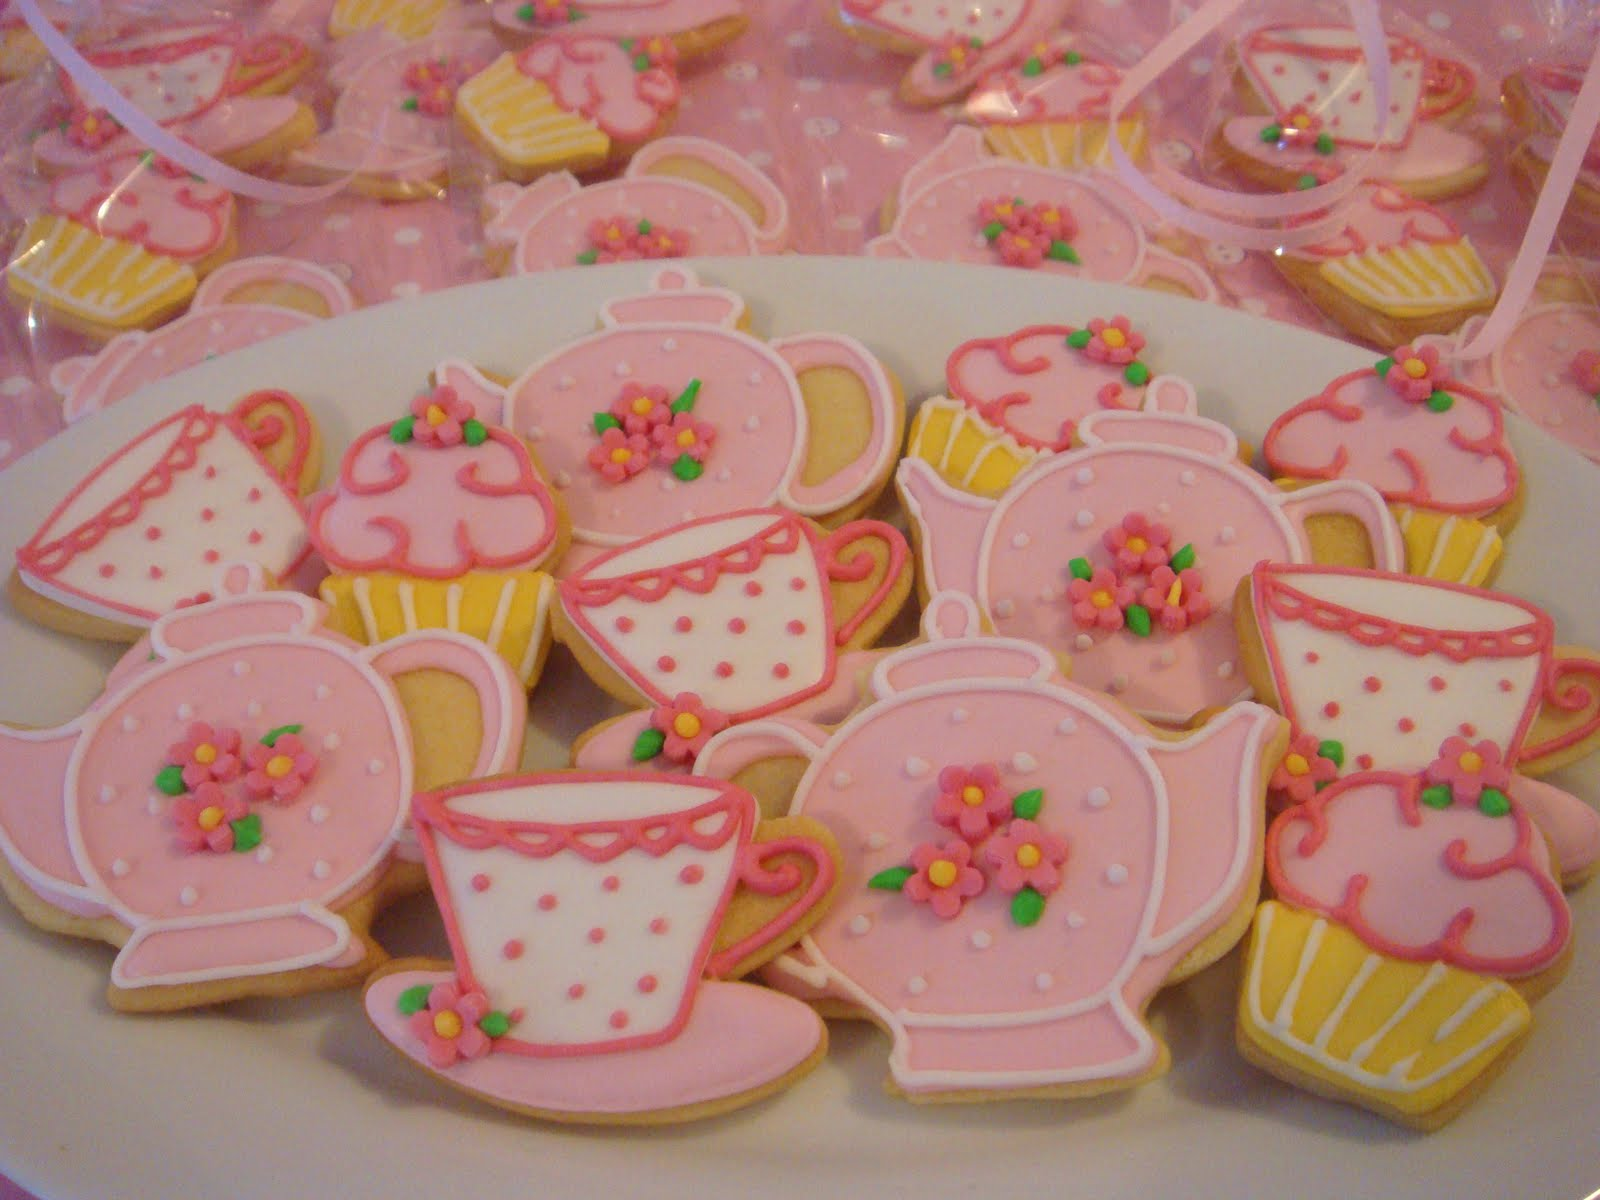 Communication on this topic: Snowflake Biscuits Recipe, snowflake-biscuits-recipe/